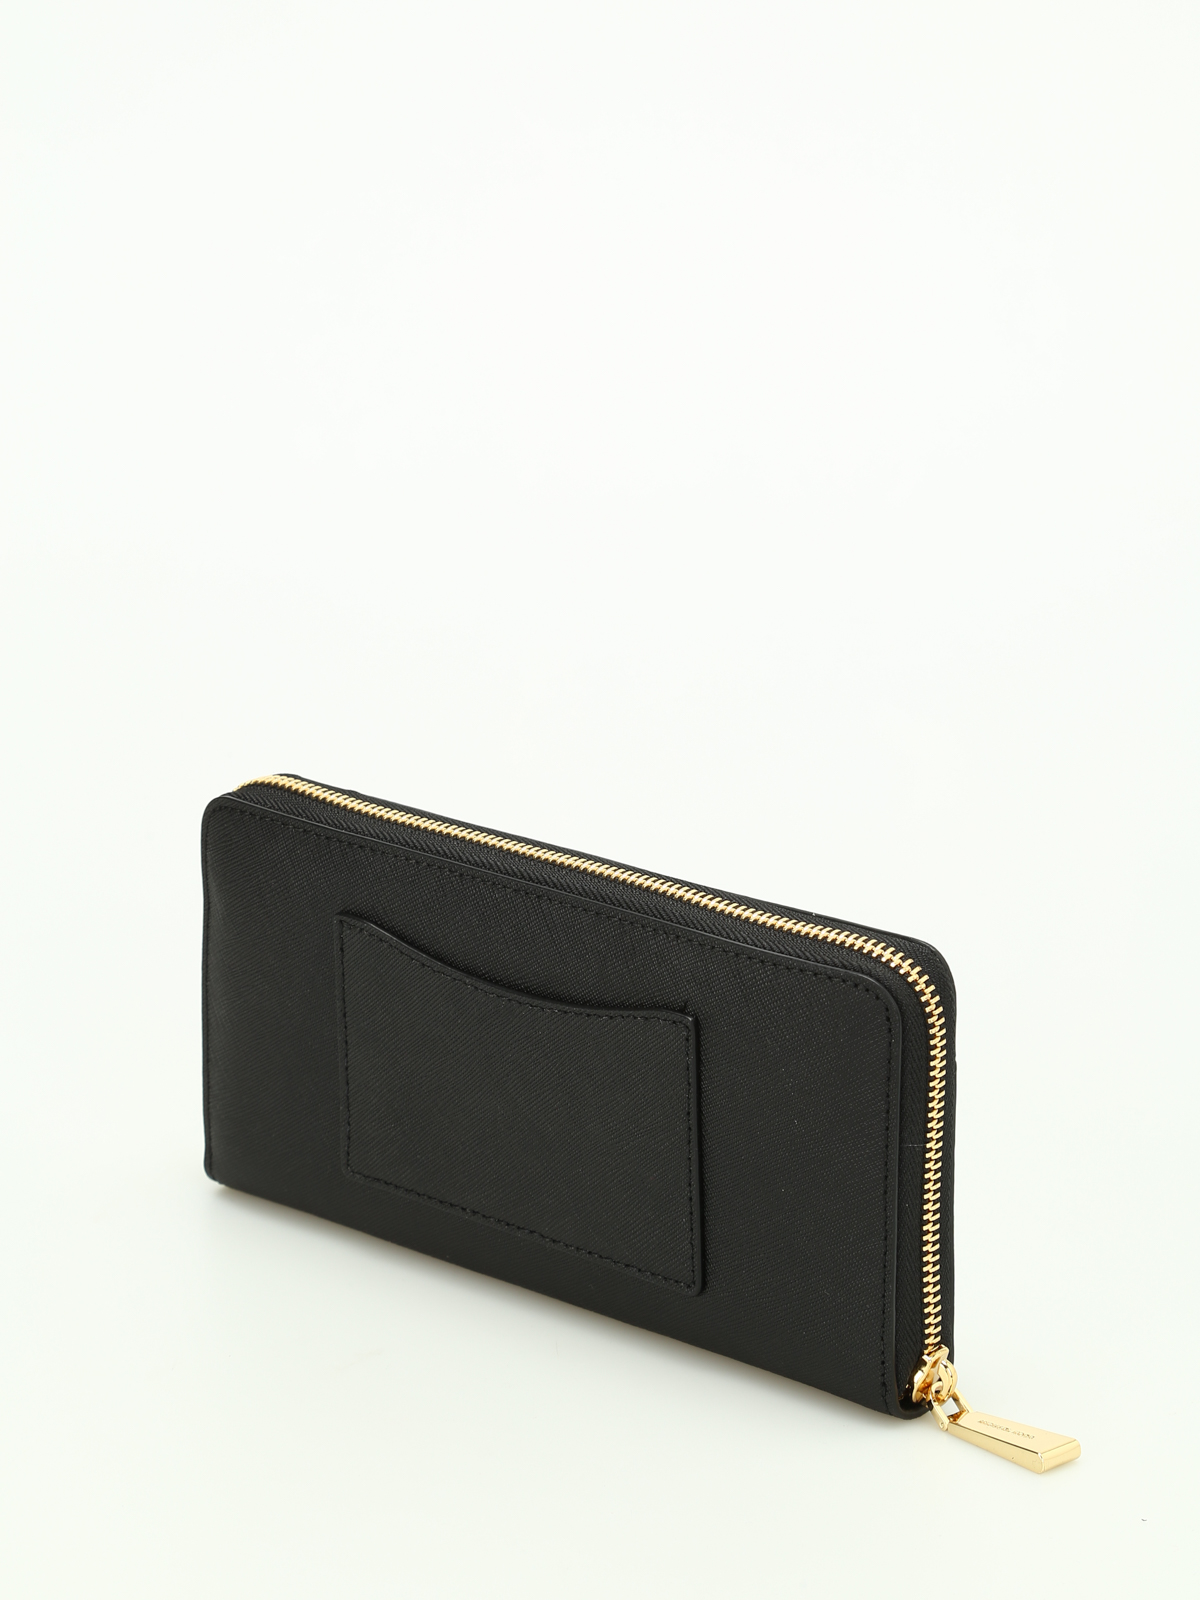 275aa71424d7 iKRIX MICHAEL KORS: wallets & purses - Jet Set continental wallet